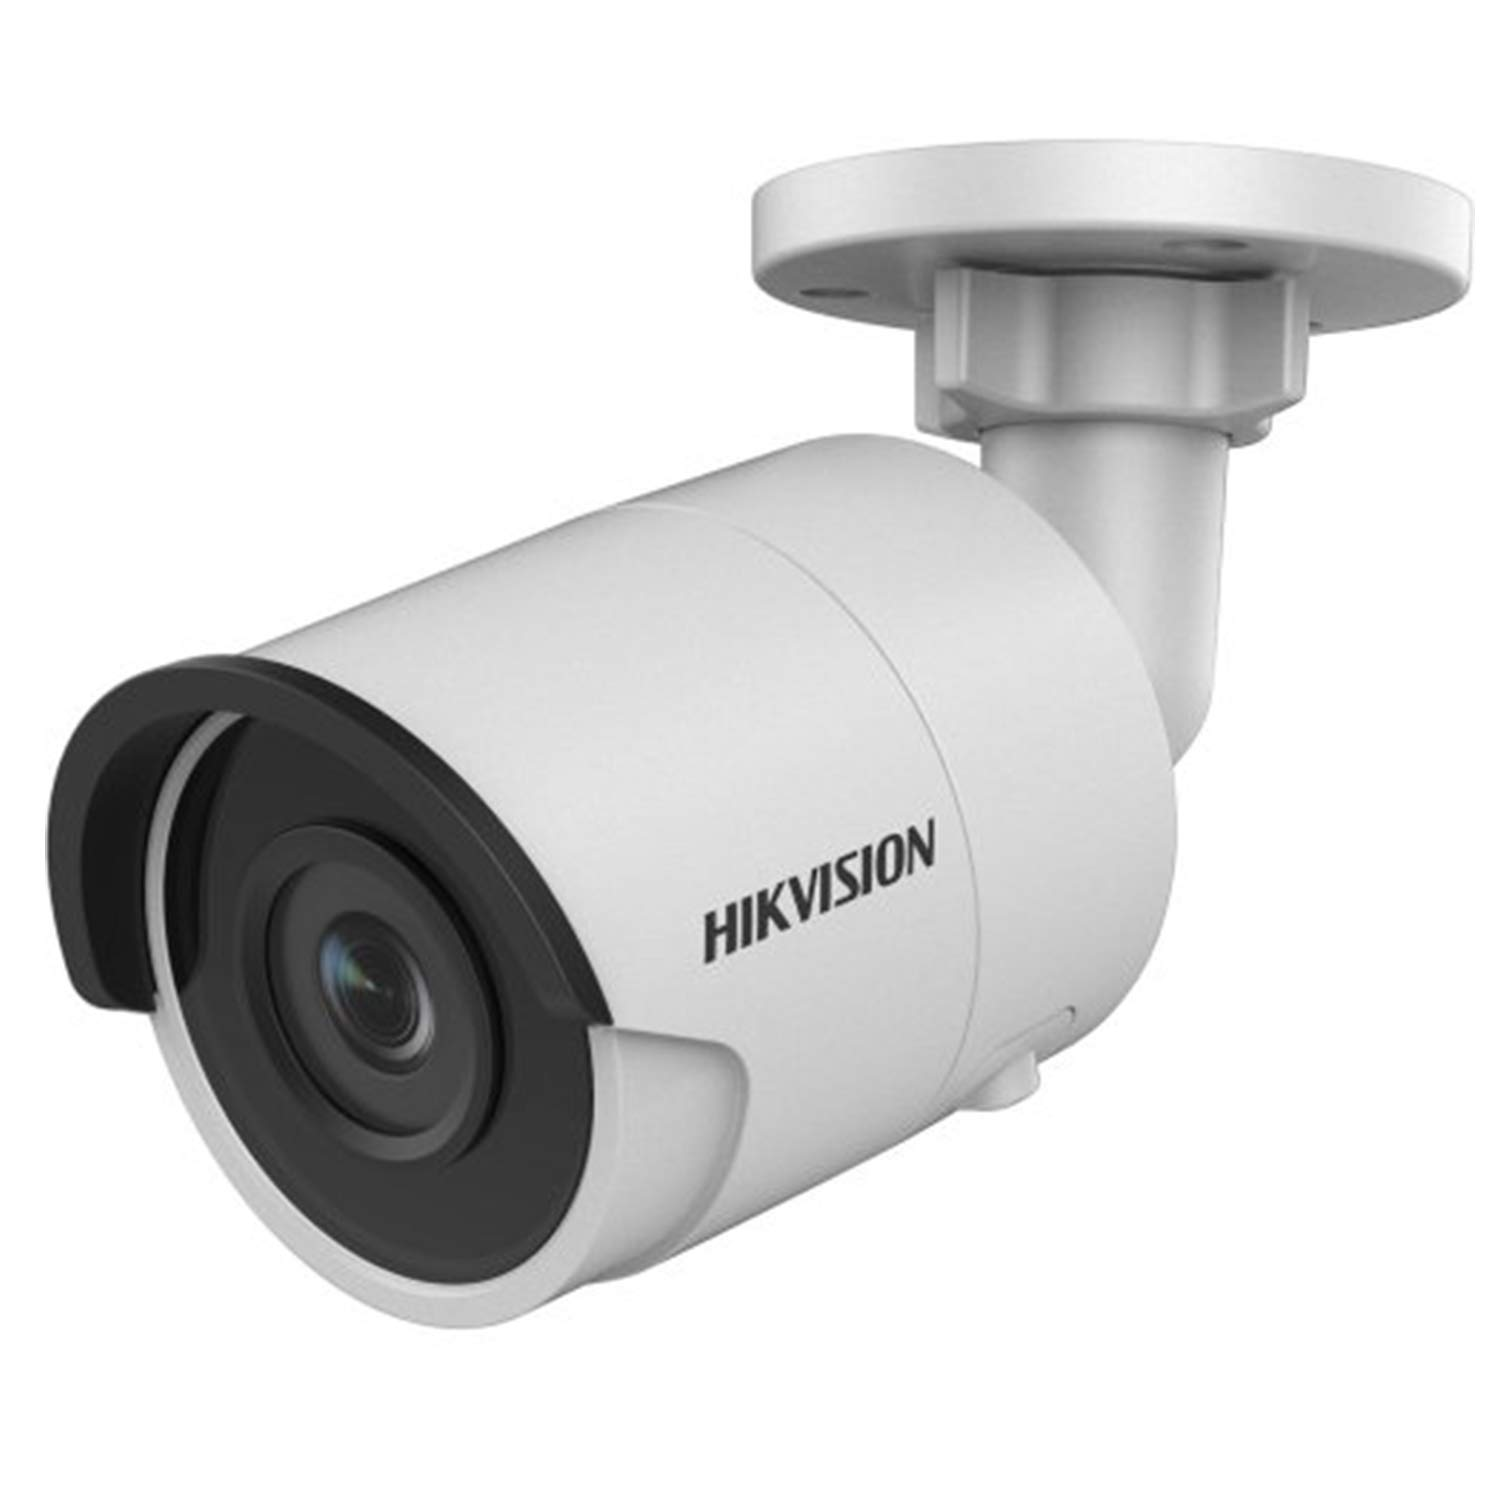 Hikvision 8 Megapixel IP Camera, H.265 DS-2CD2085FWD-I Bullet Security Camera Outdoor IP67 firmware upgradeable International Version 2.8mm Lens